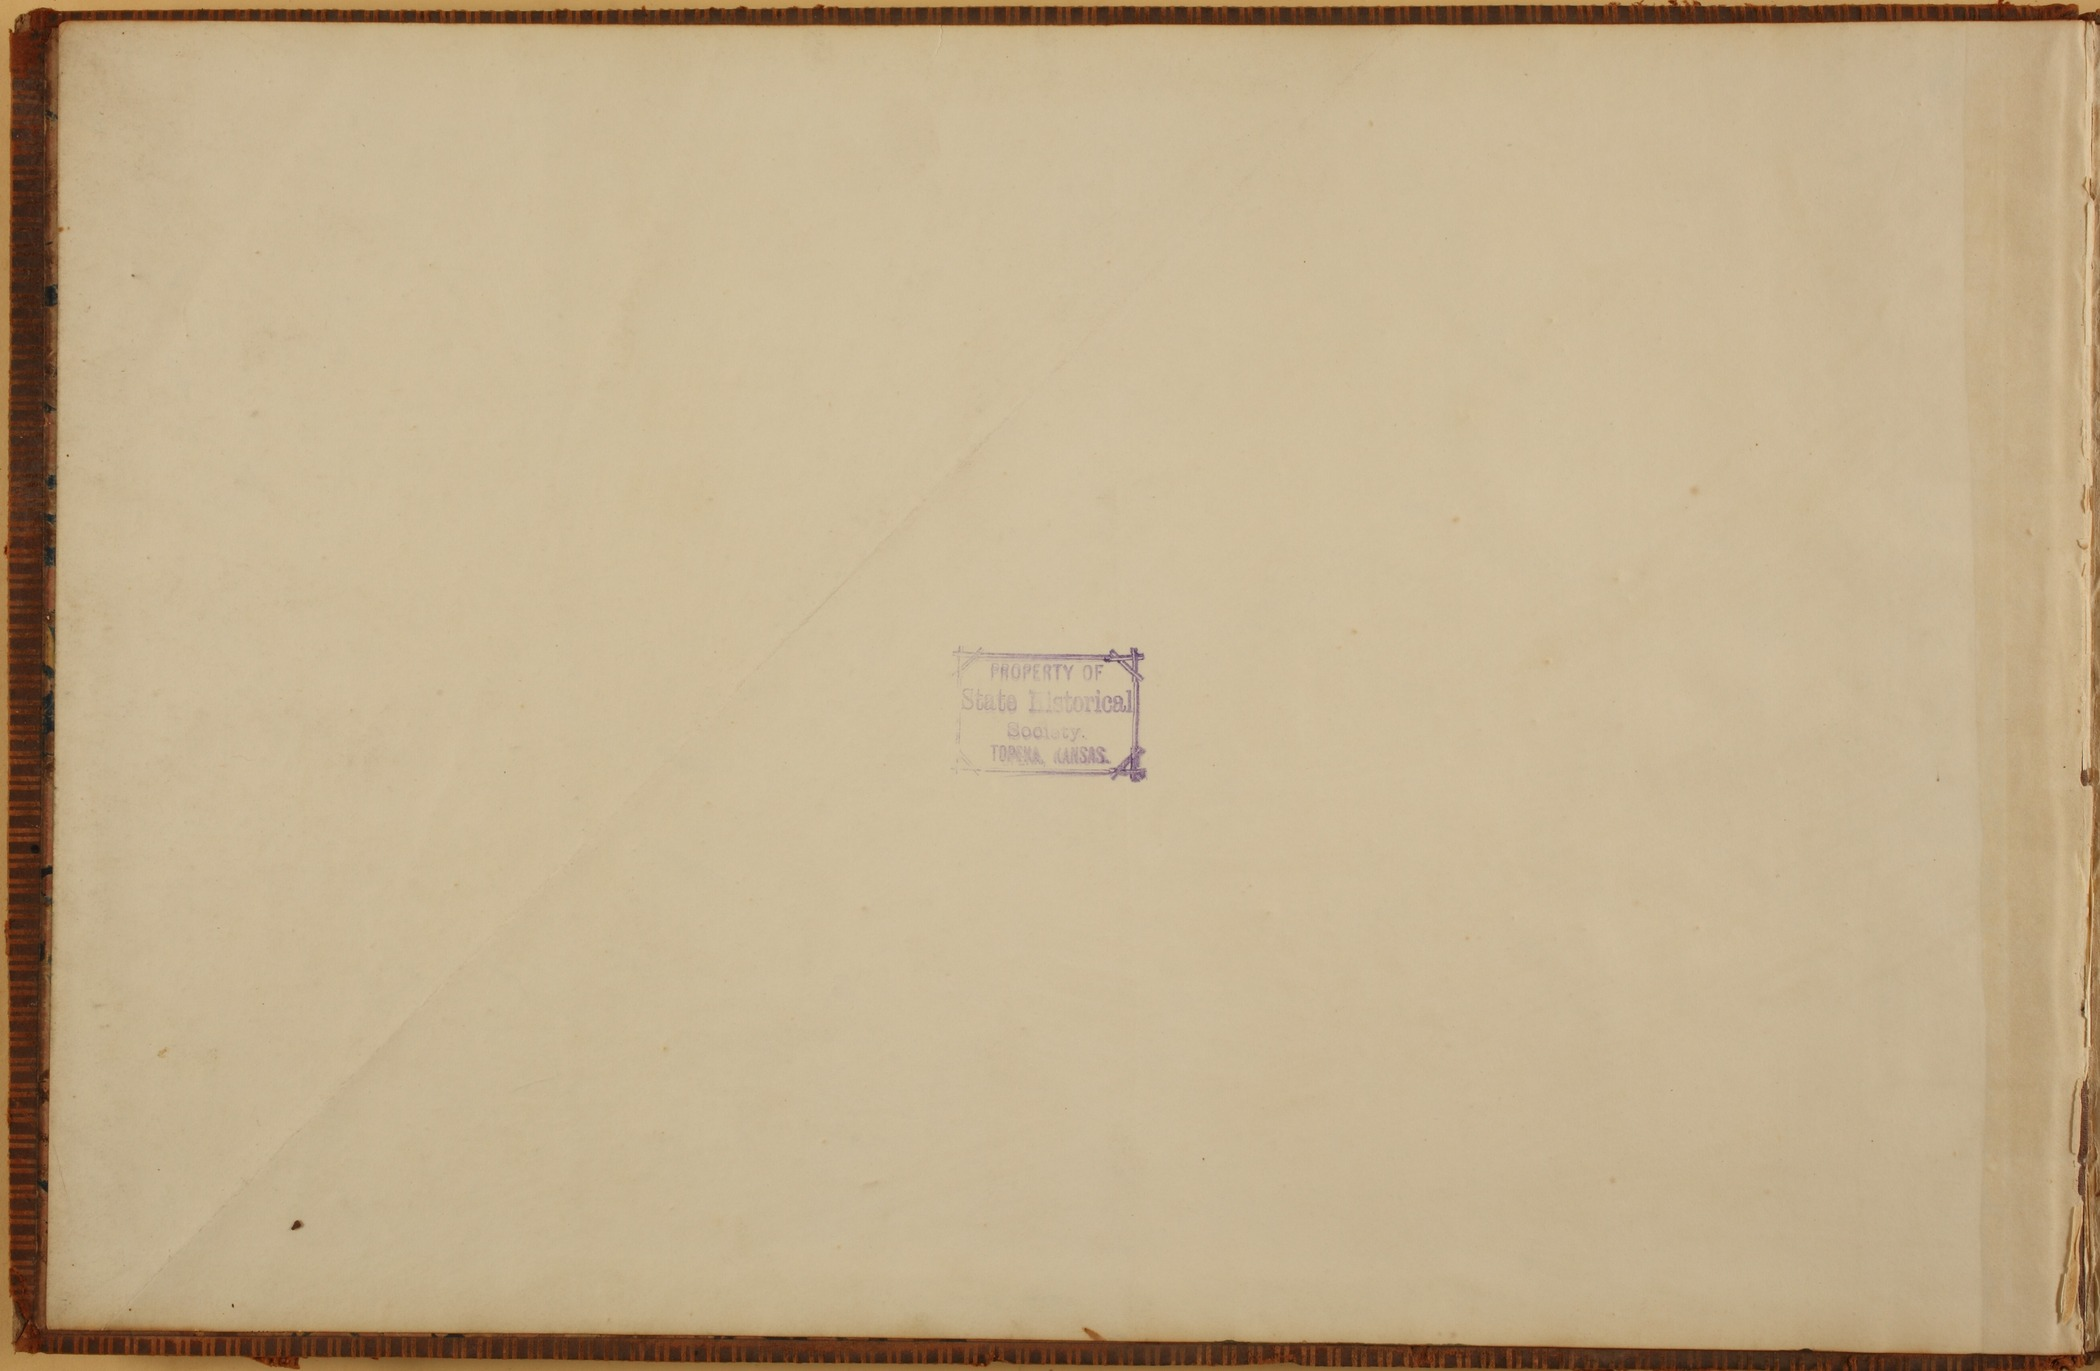 United States Office of Indian Affairs, Central Superintendency, St. Louis, Missouri. Volume 13, Accounts - Stamp